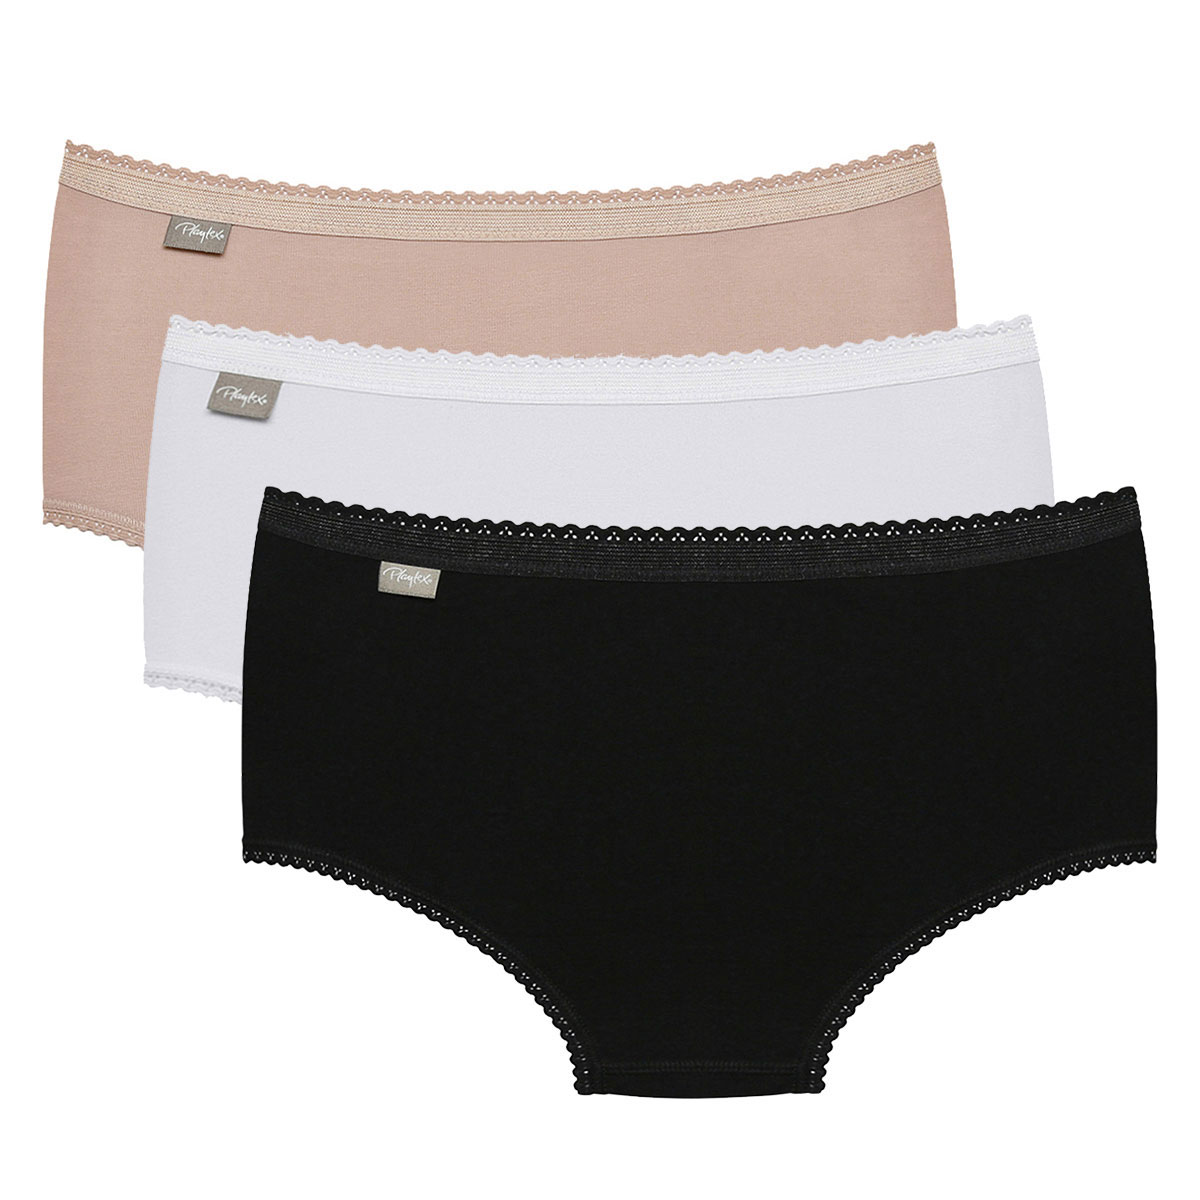 3 Pack Midi briefs : white, black and beige - Cotton Stretch-PLAYTEX